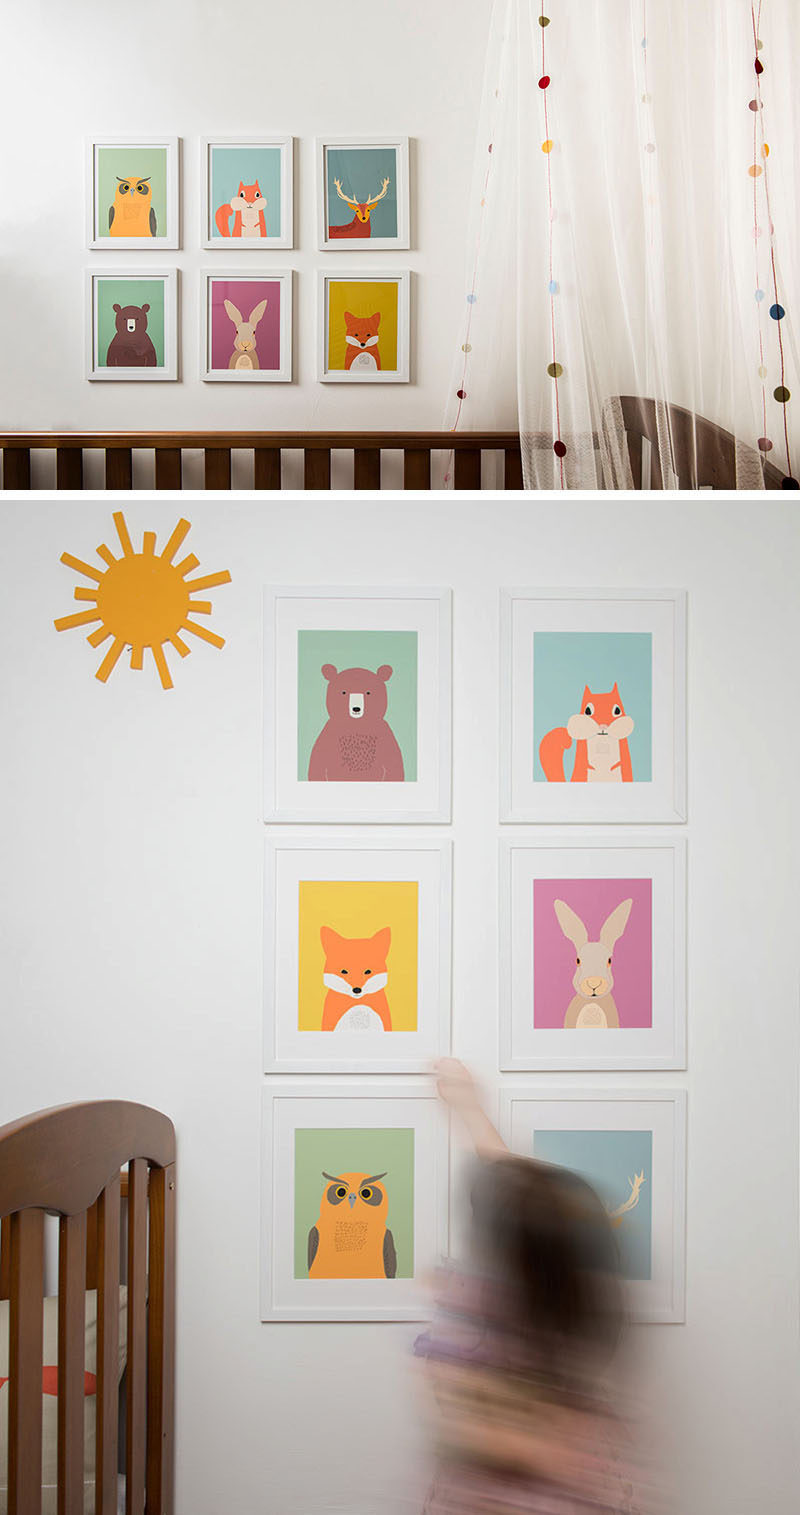 15 Decor Ideas For Creating A Woodland Nursery Design // Include your favorite woodland creatures in the nursery with cartoon prints on colorful backgrounds that are in keeping with the other colors in the room. #WoodlandNursery #BabyNursery #NurseryArt #ModernNursery